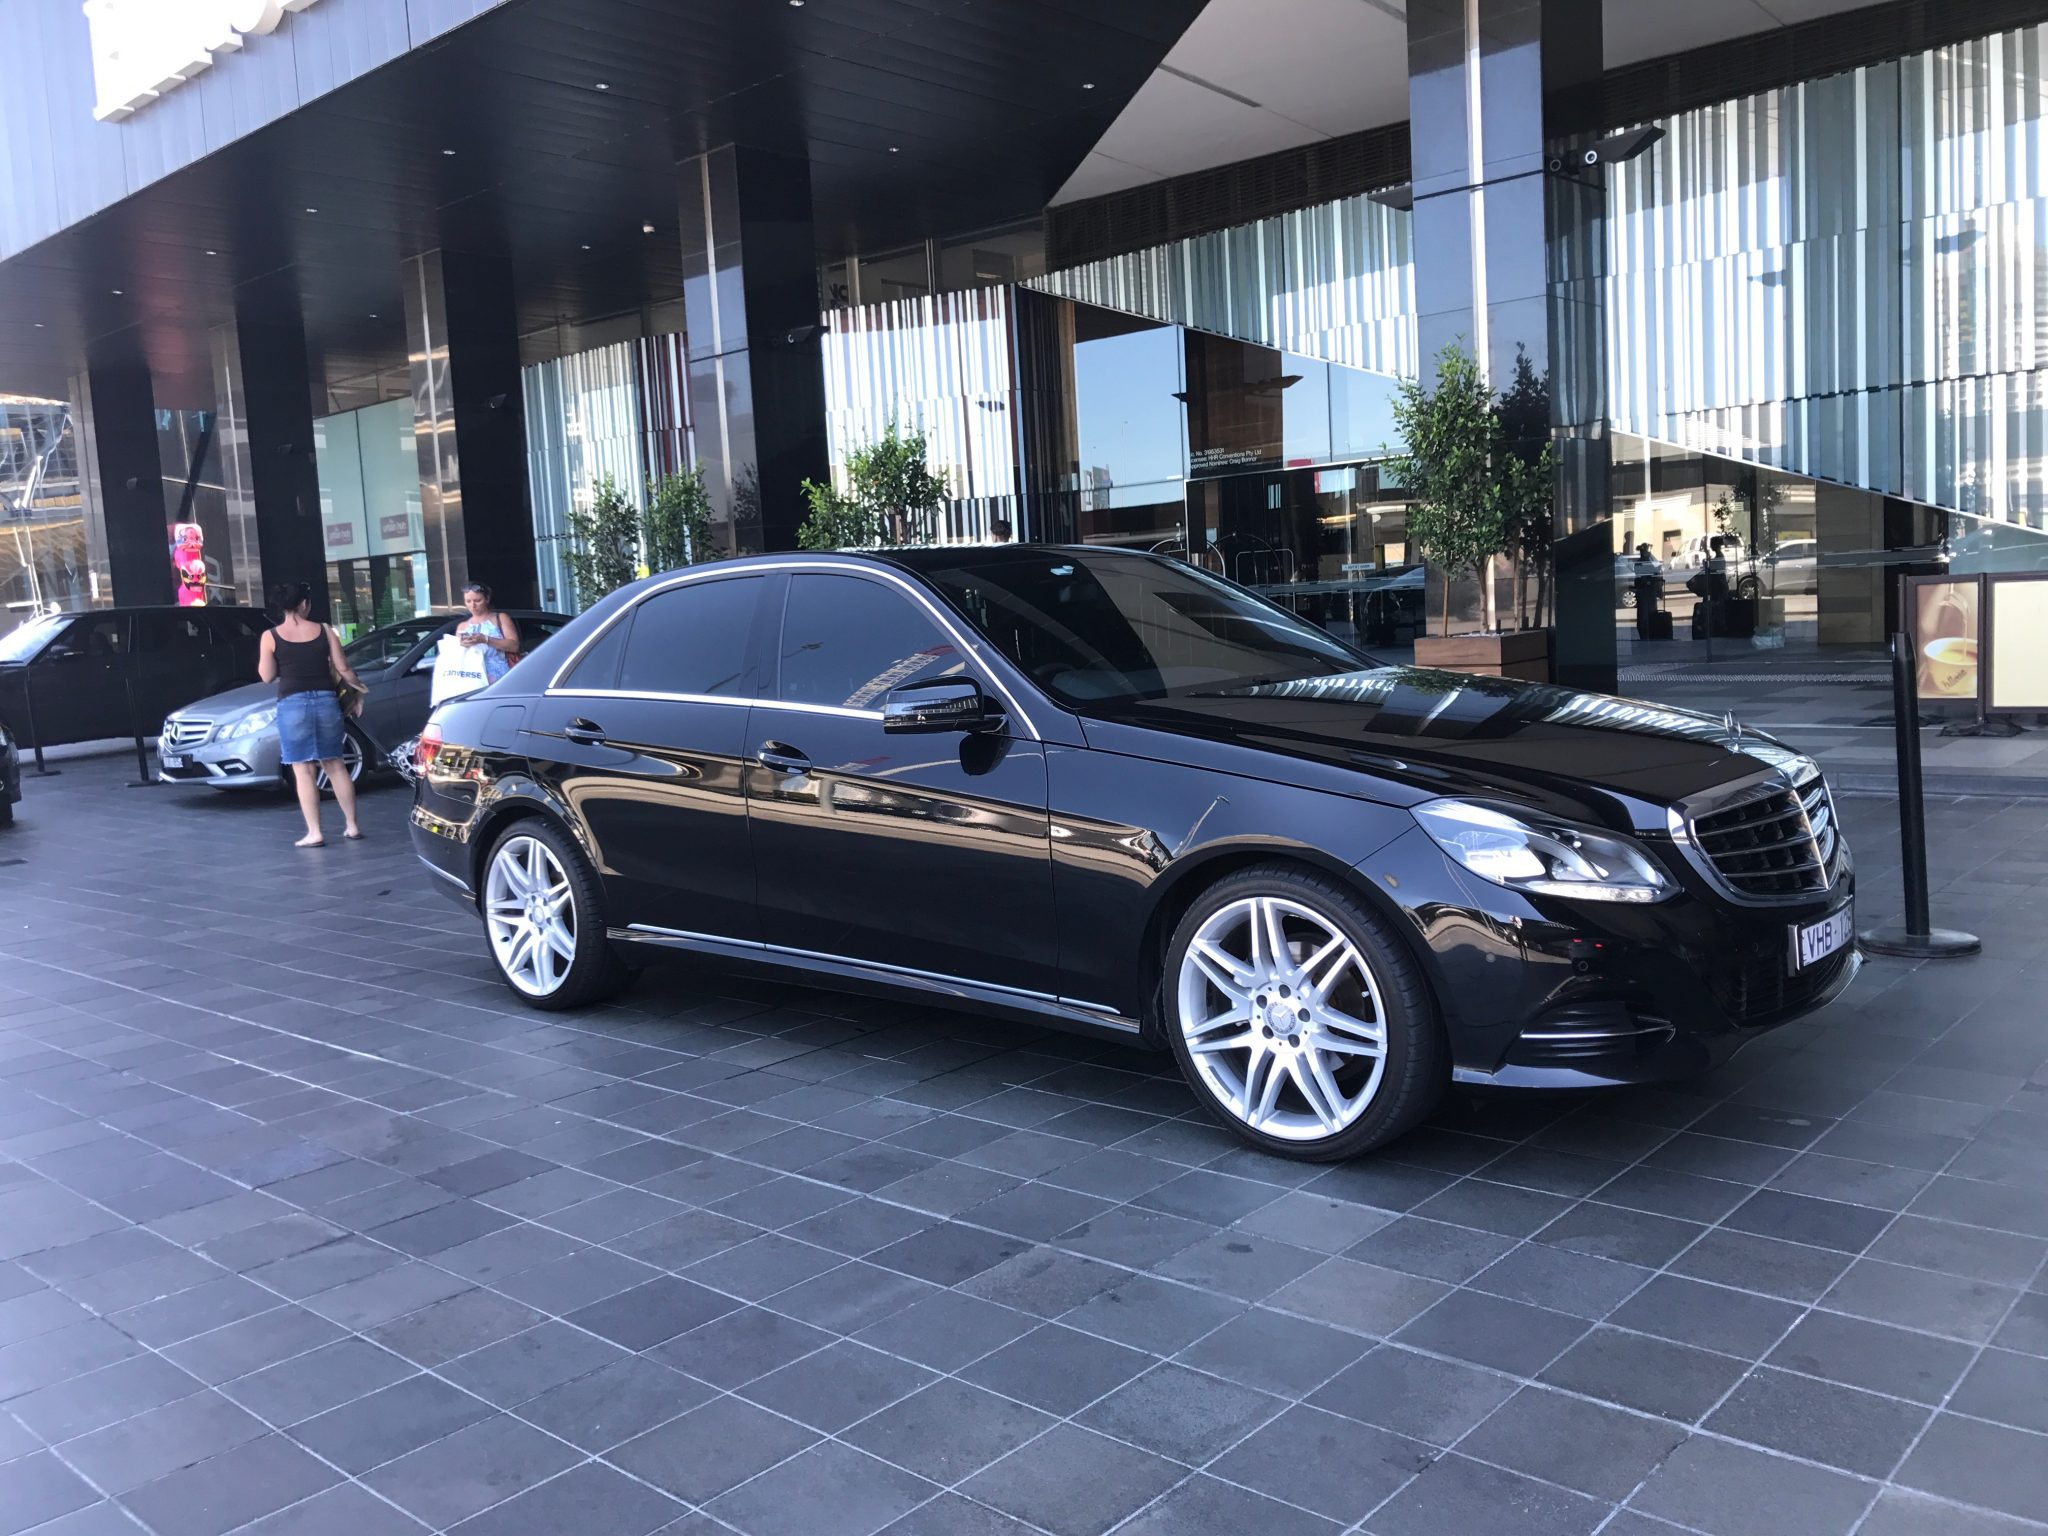 Hire Private Chauffeur car hire in Yarra Valley Melbourne Victoria